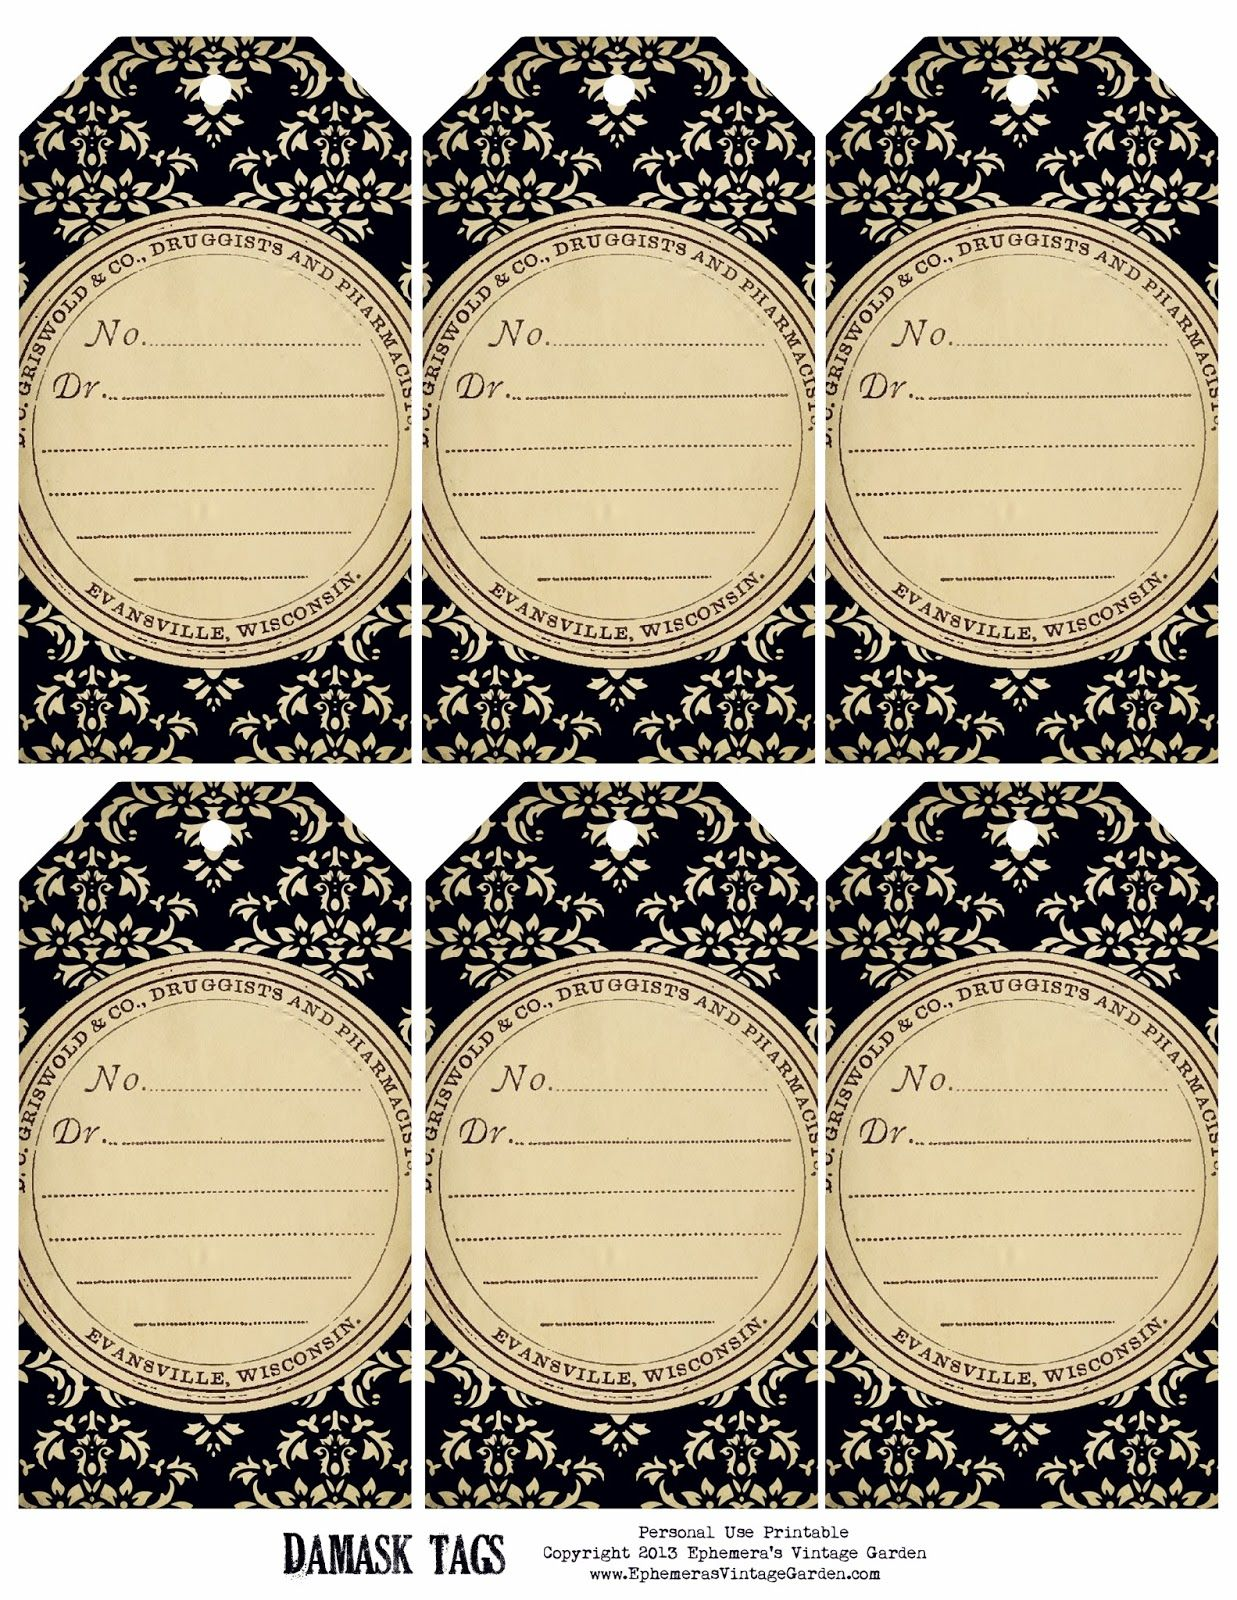 Ephemerasvintagegardenspot Weekly Free Printable Damask Tags Click On The Image Save